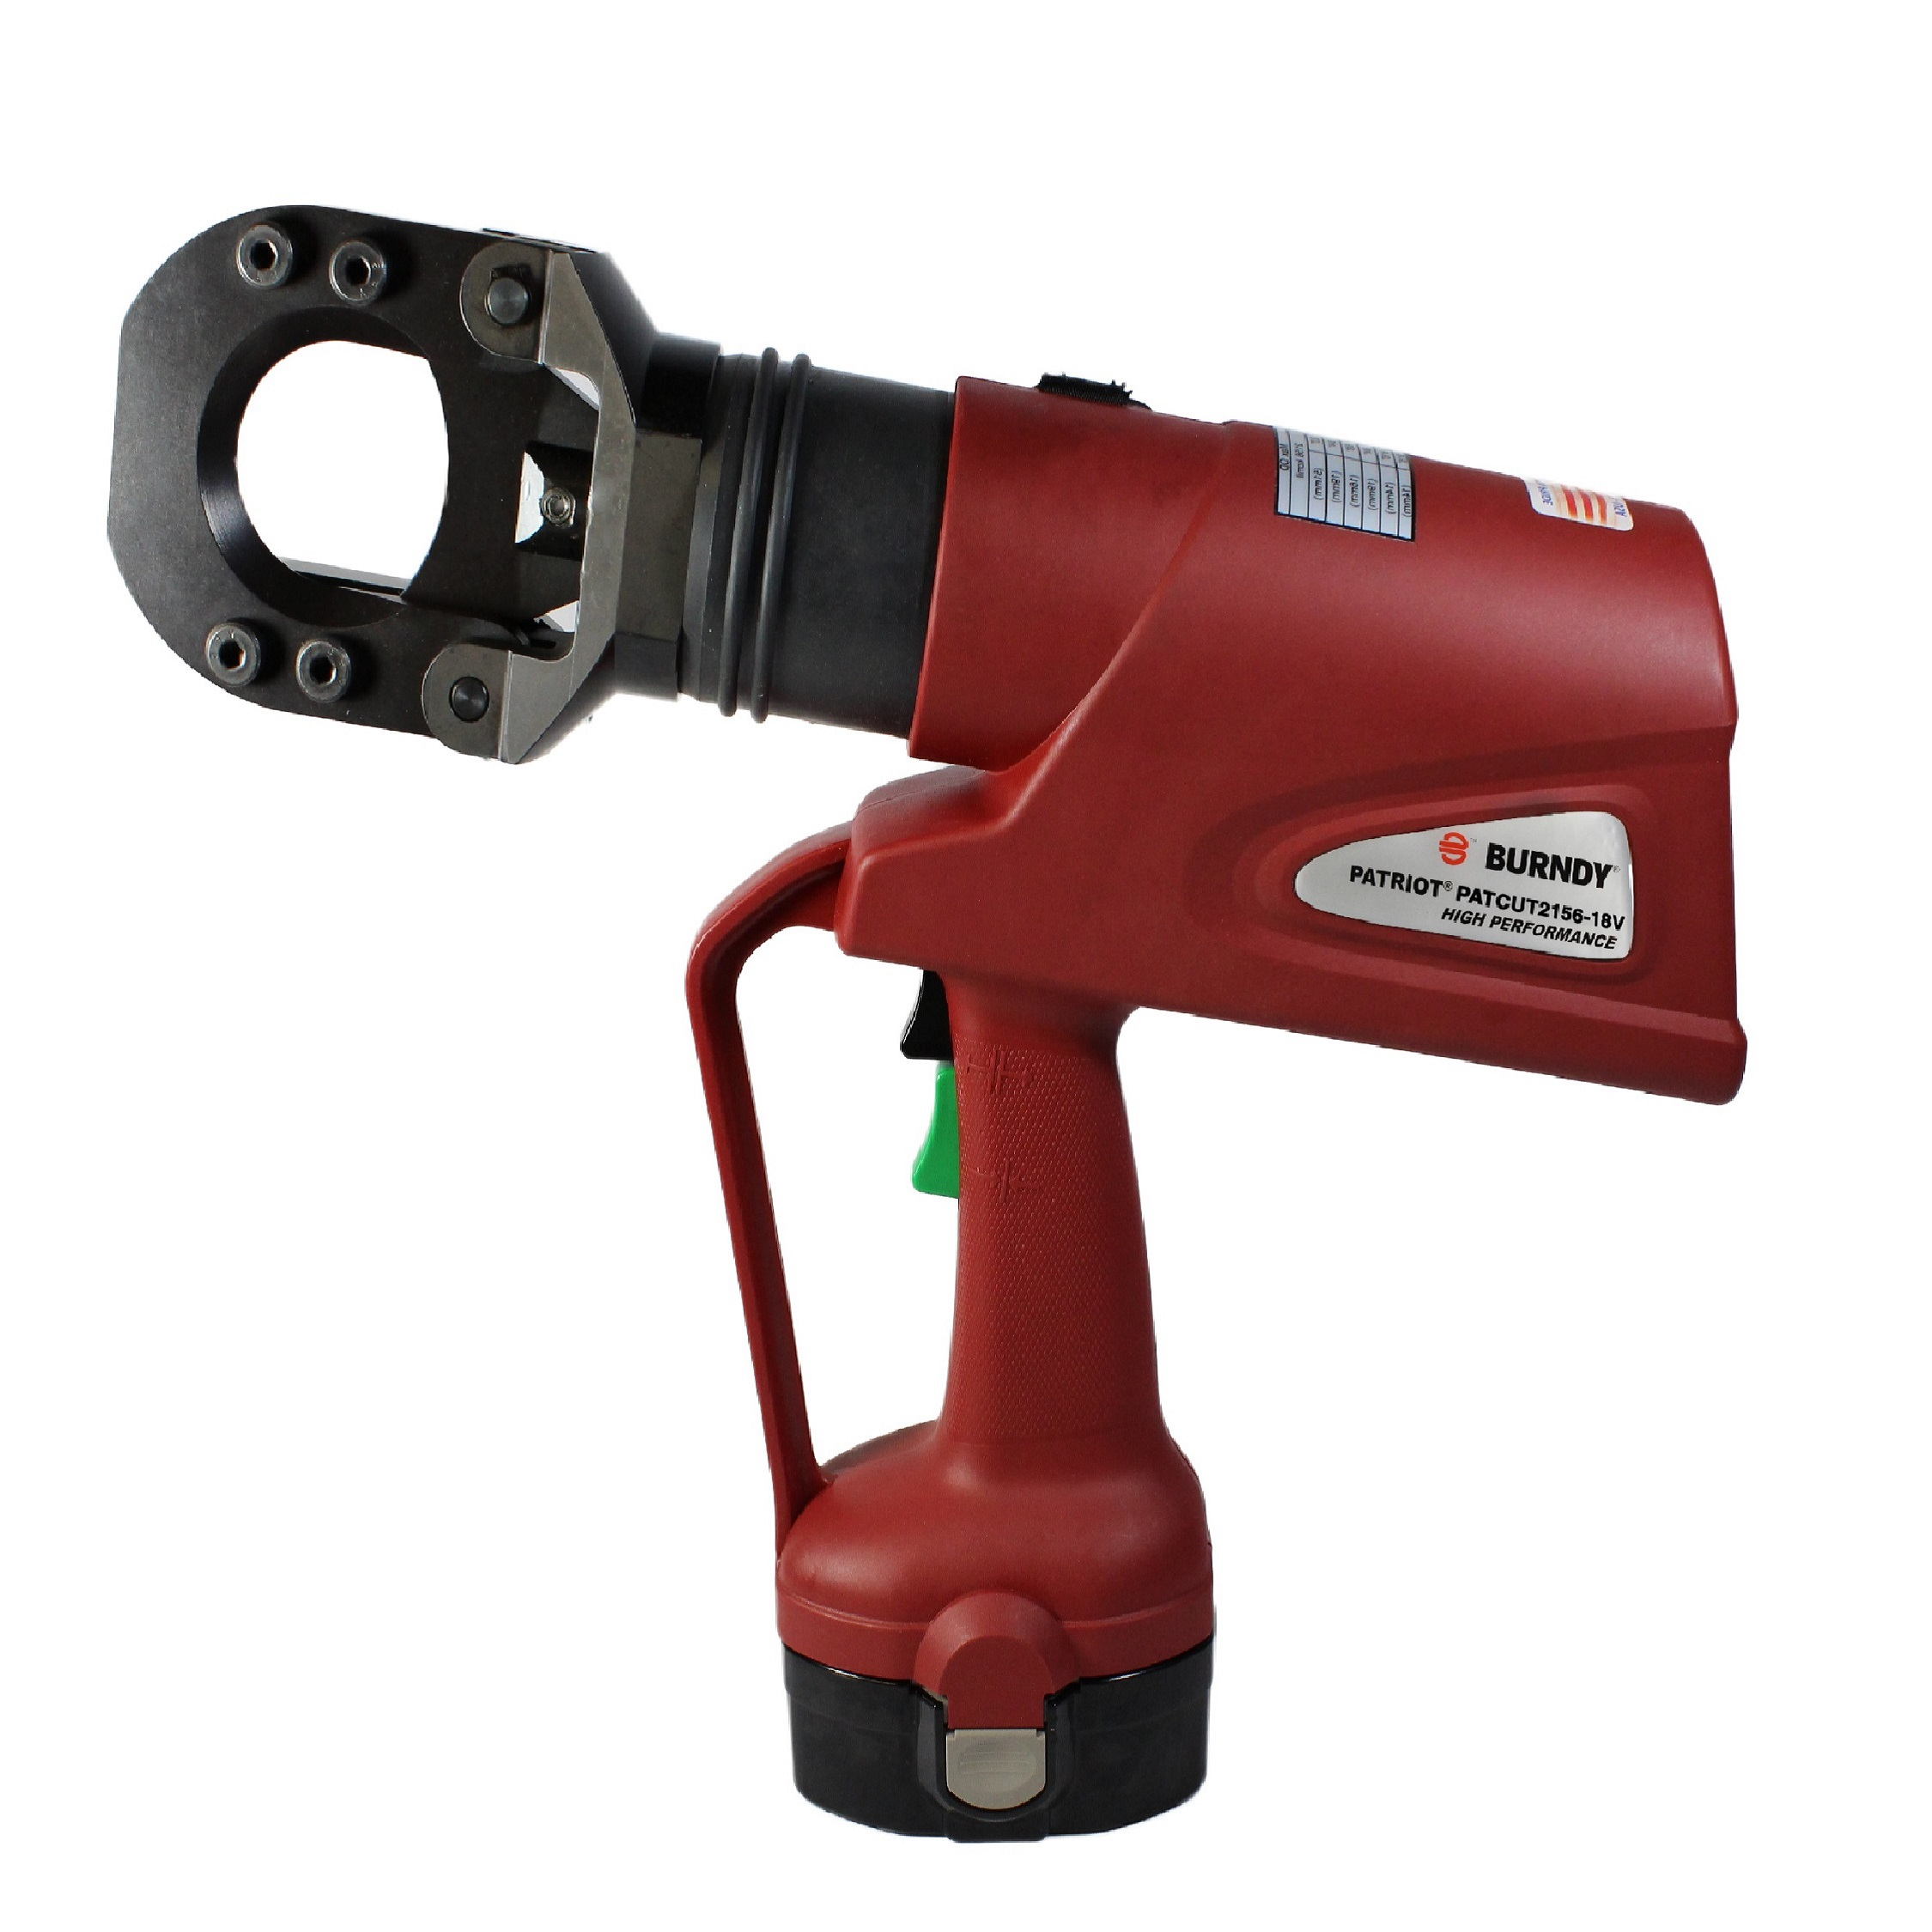 Burndy Hydraulic Self Contained Battery Actuated tool 18V  Cutter with 120V Charger, 16.52